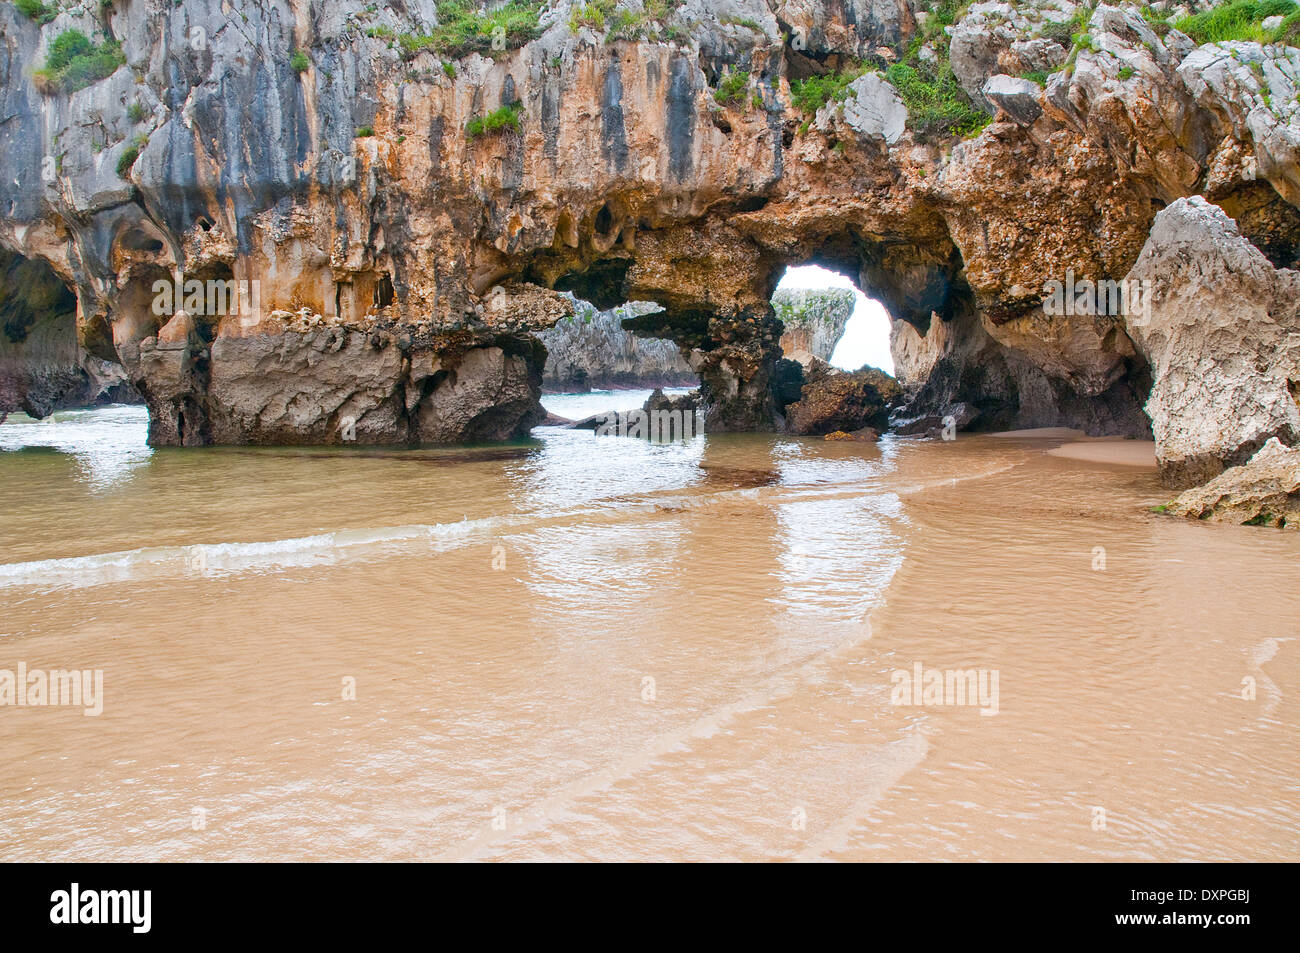 Cuevas del Mar beach. Nueva, Asturias, Spain. - Stock Image